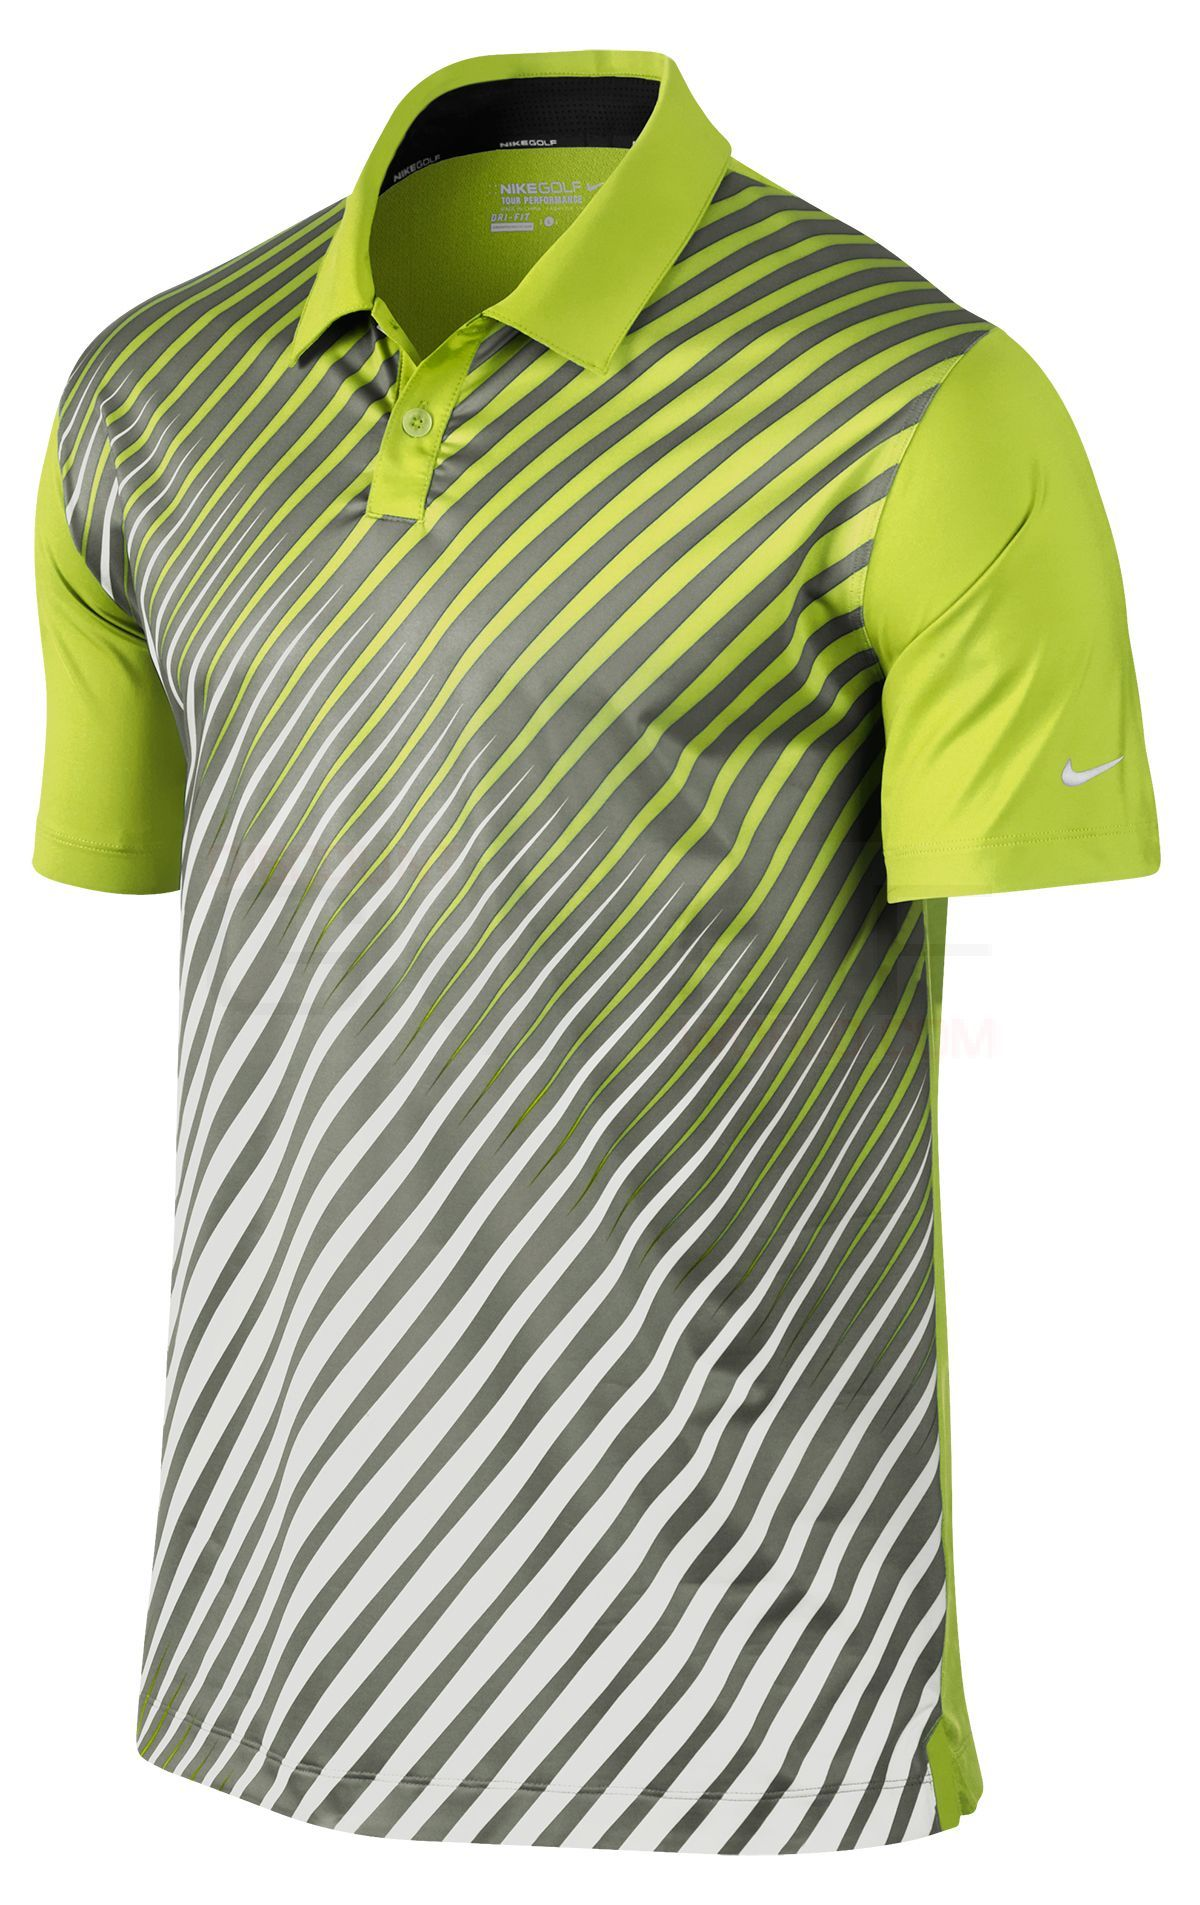 ffba8988 nike innovation graphic polo - Google Search | Golf Shirts | Polo ...